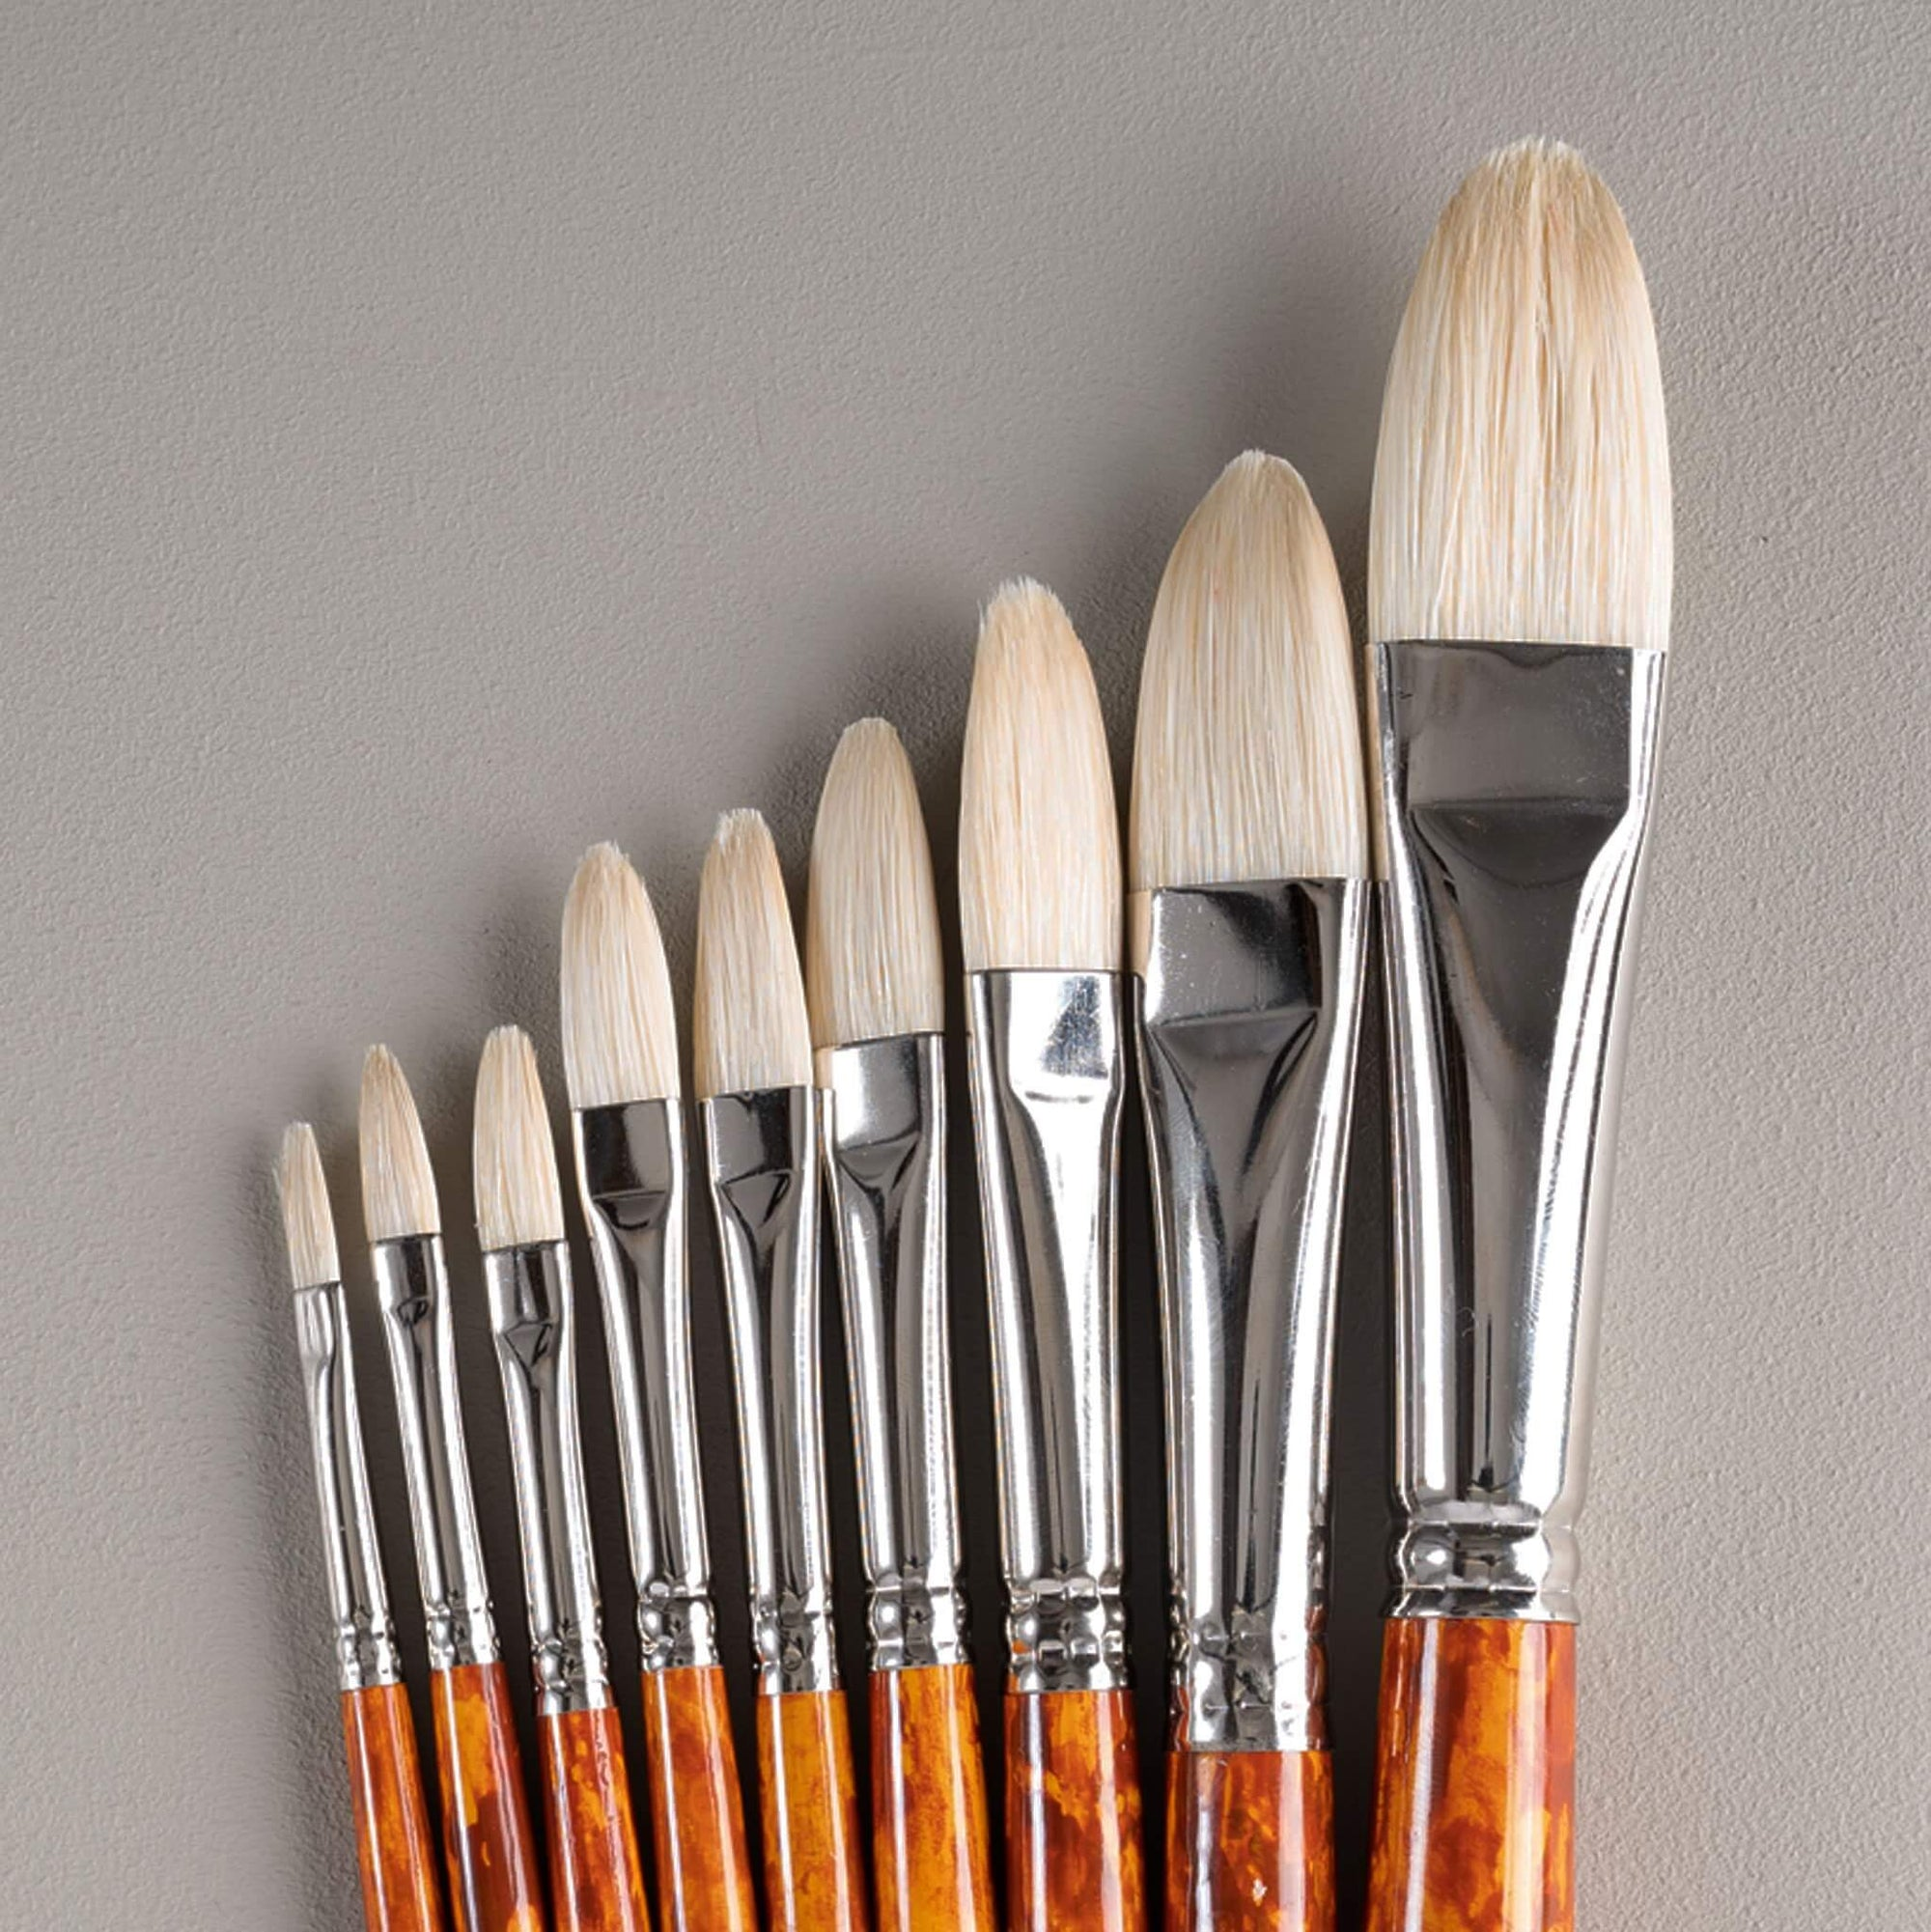 ARTdiscount Bristle Brushes - Filbert